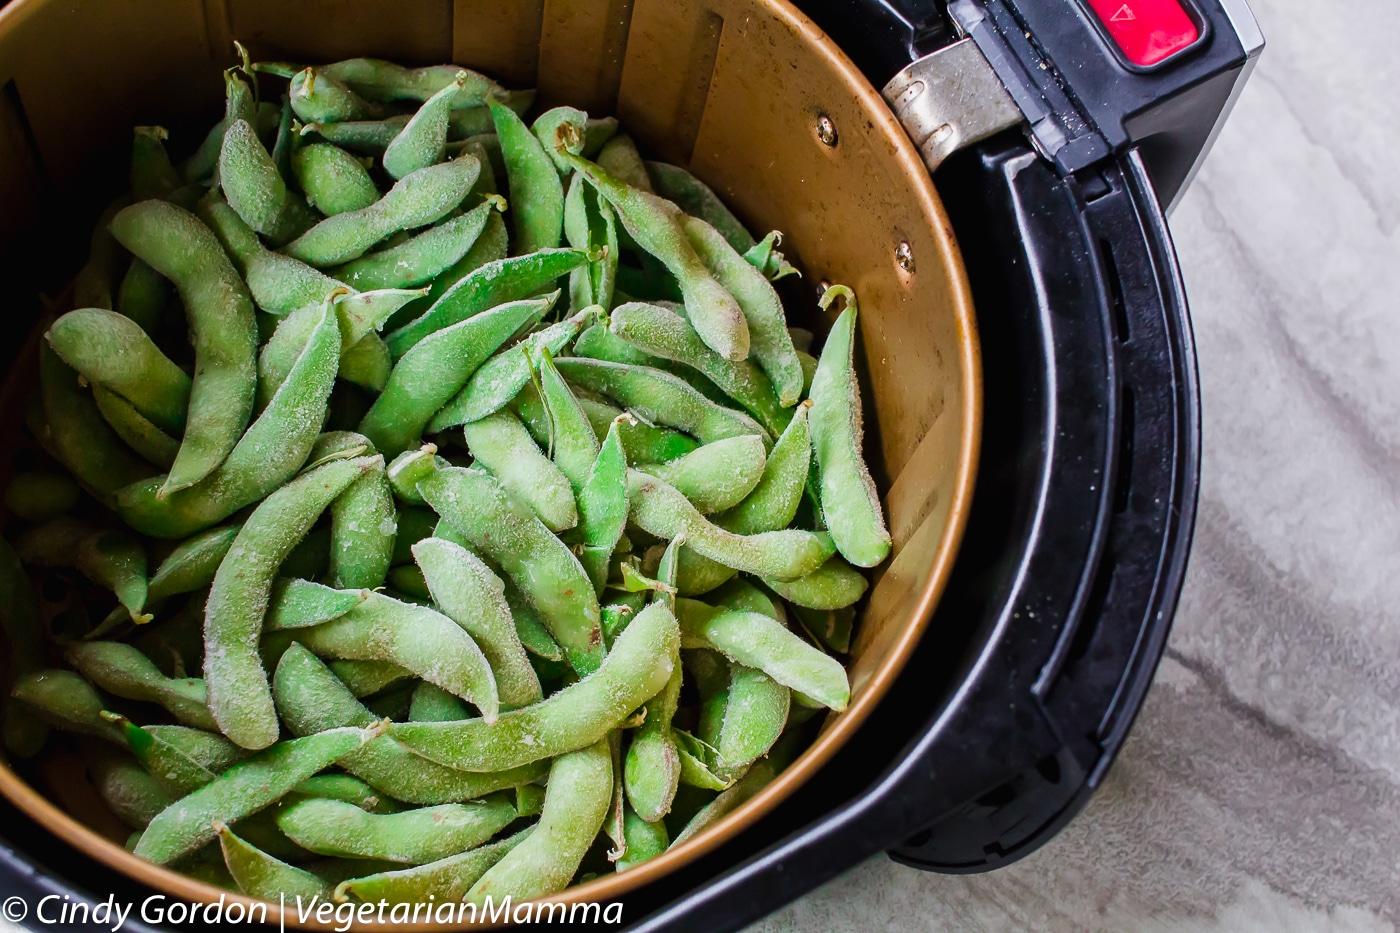 Frozen Edamame in the air fryer basket.